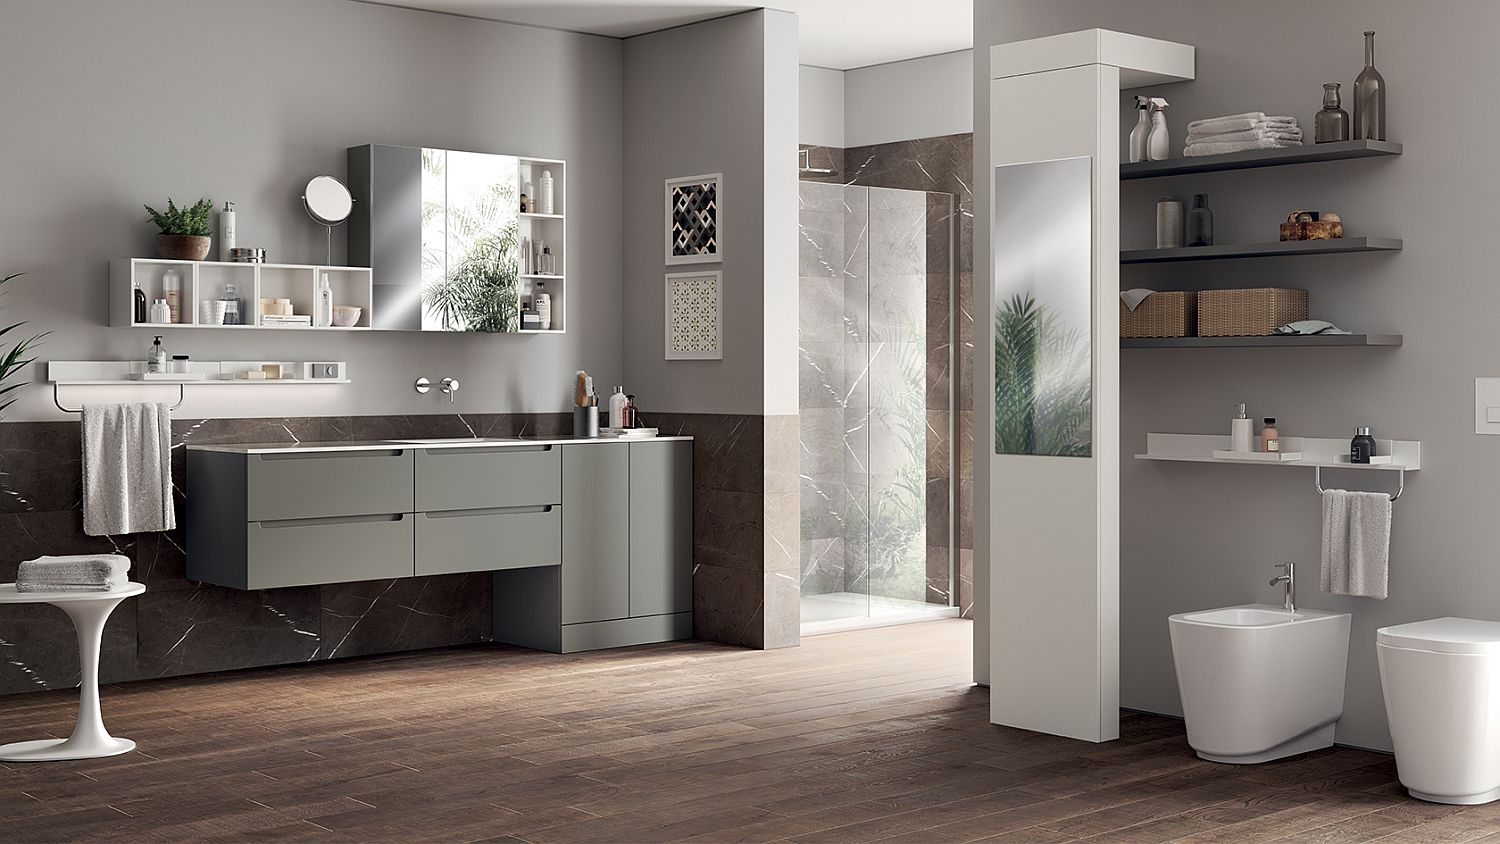 Scavolini's Idro bathroom in gray becomes the template for this Laundry Space Design